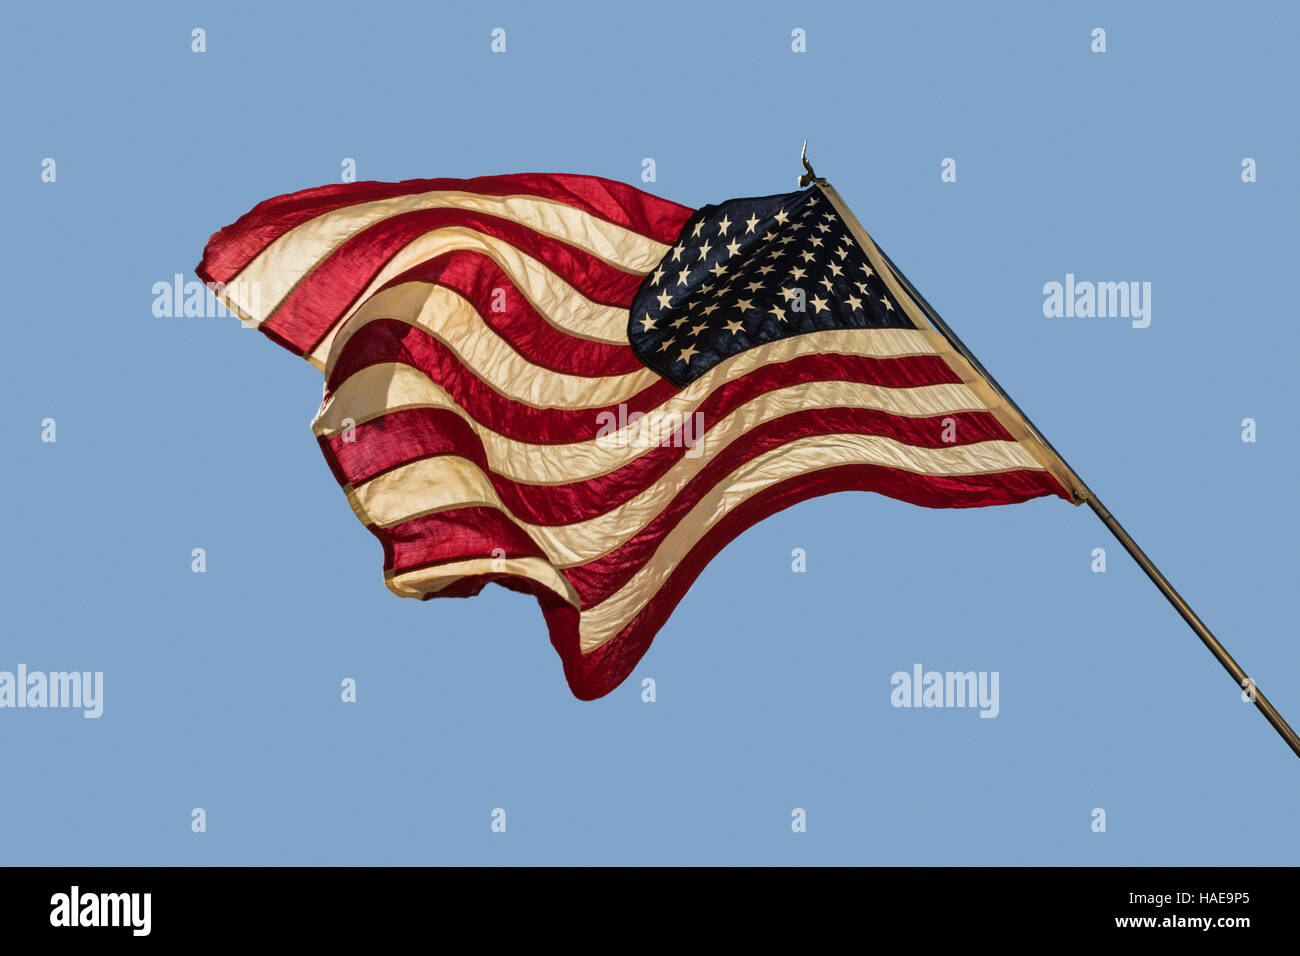 American flag going in all different directions. A representation of the turmoil and dissent in the American people. - Stock Image